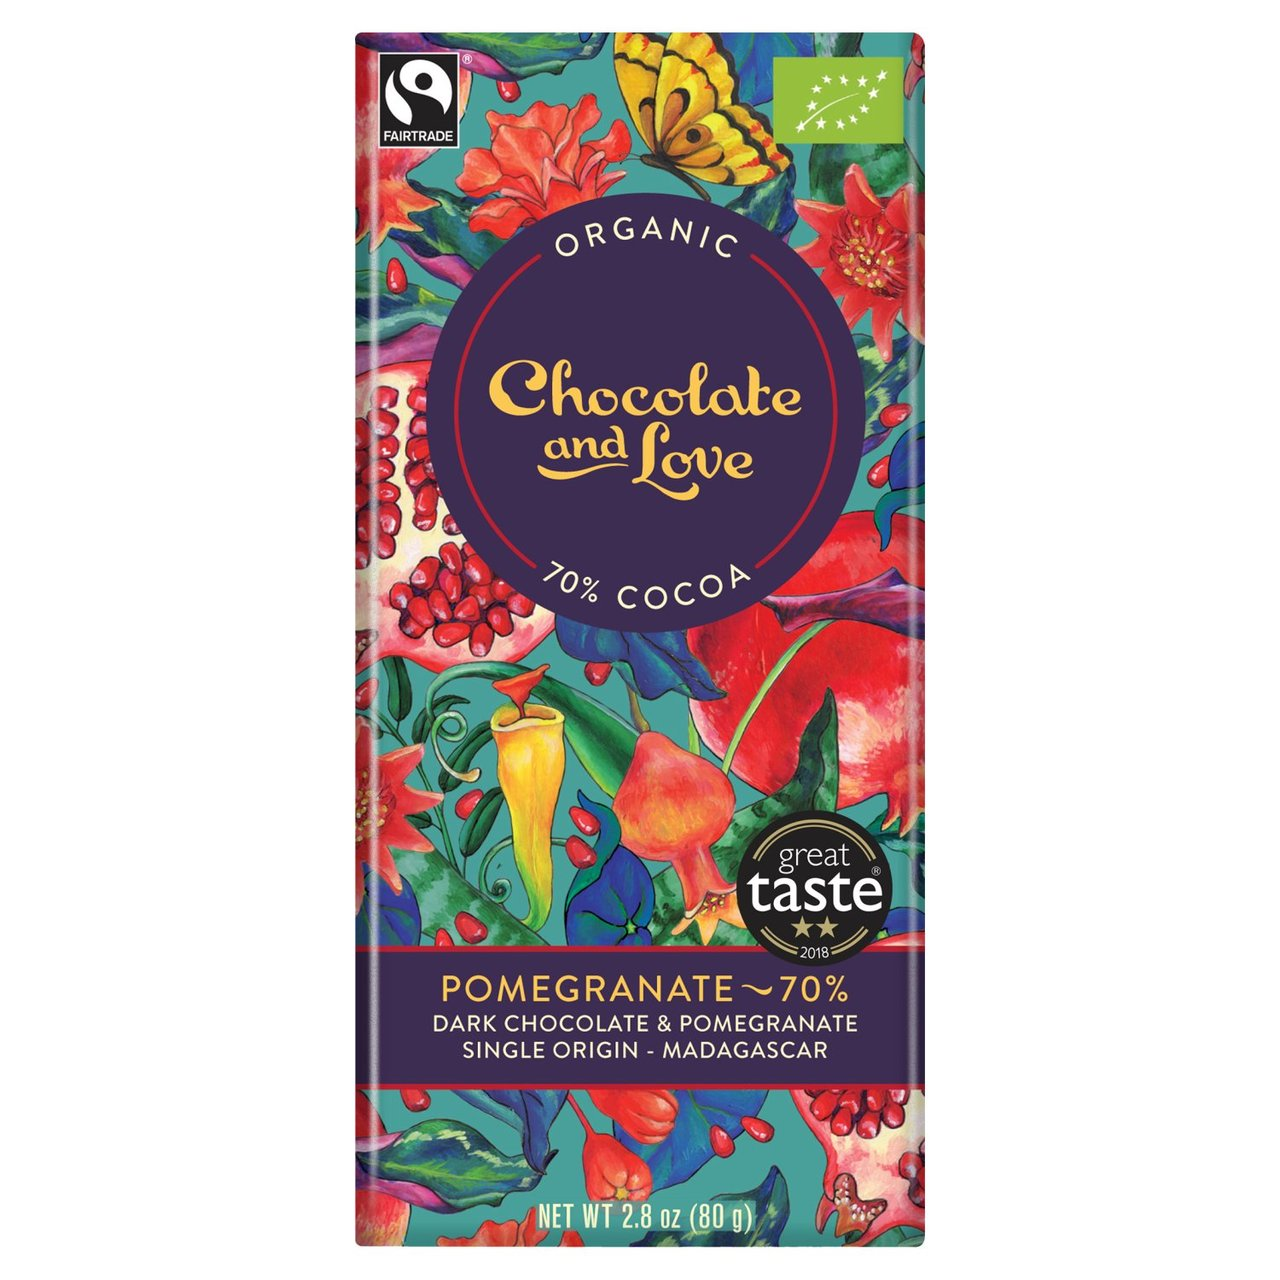 Pomegranate Chocolate & Love Organic Fairtrade Chocolate Bar